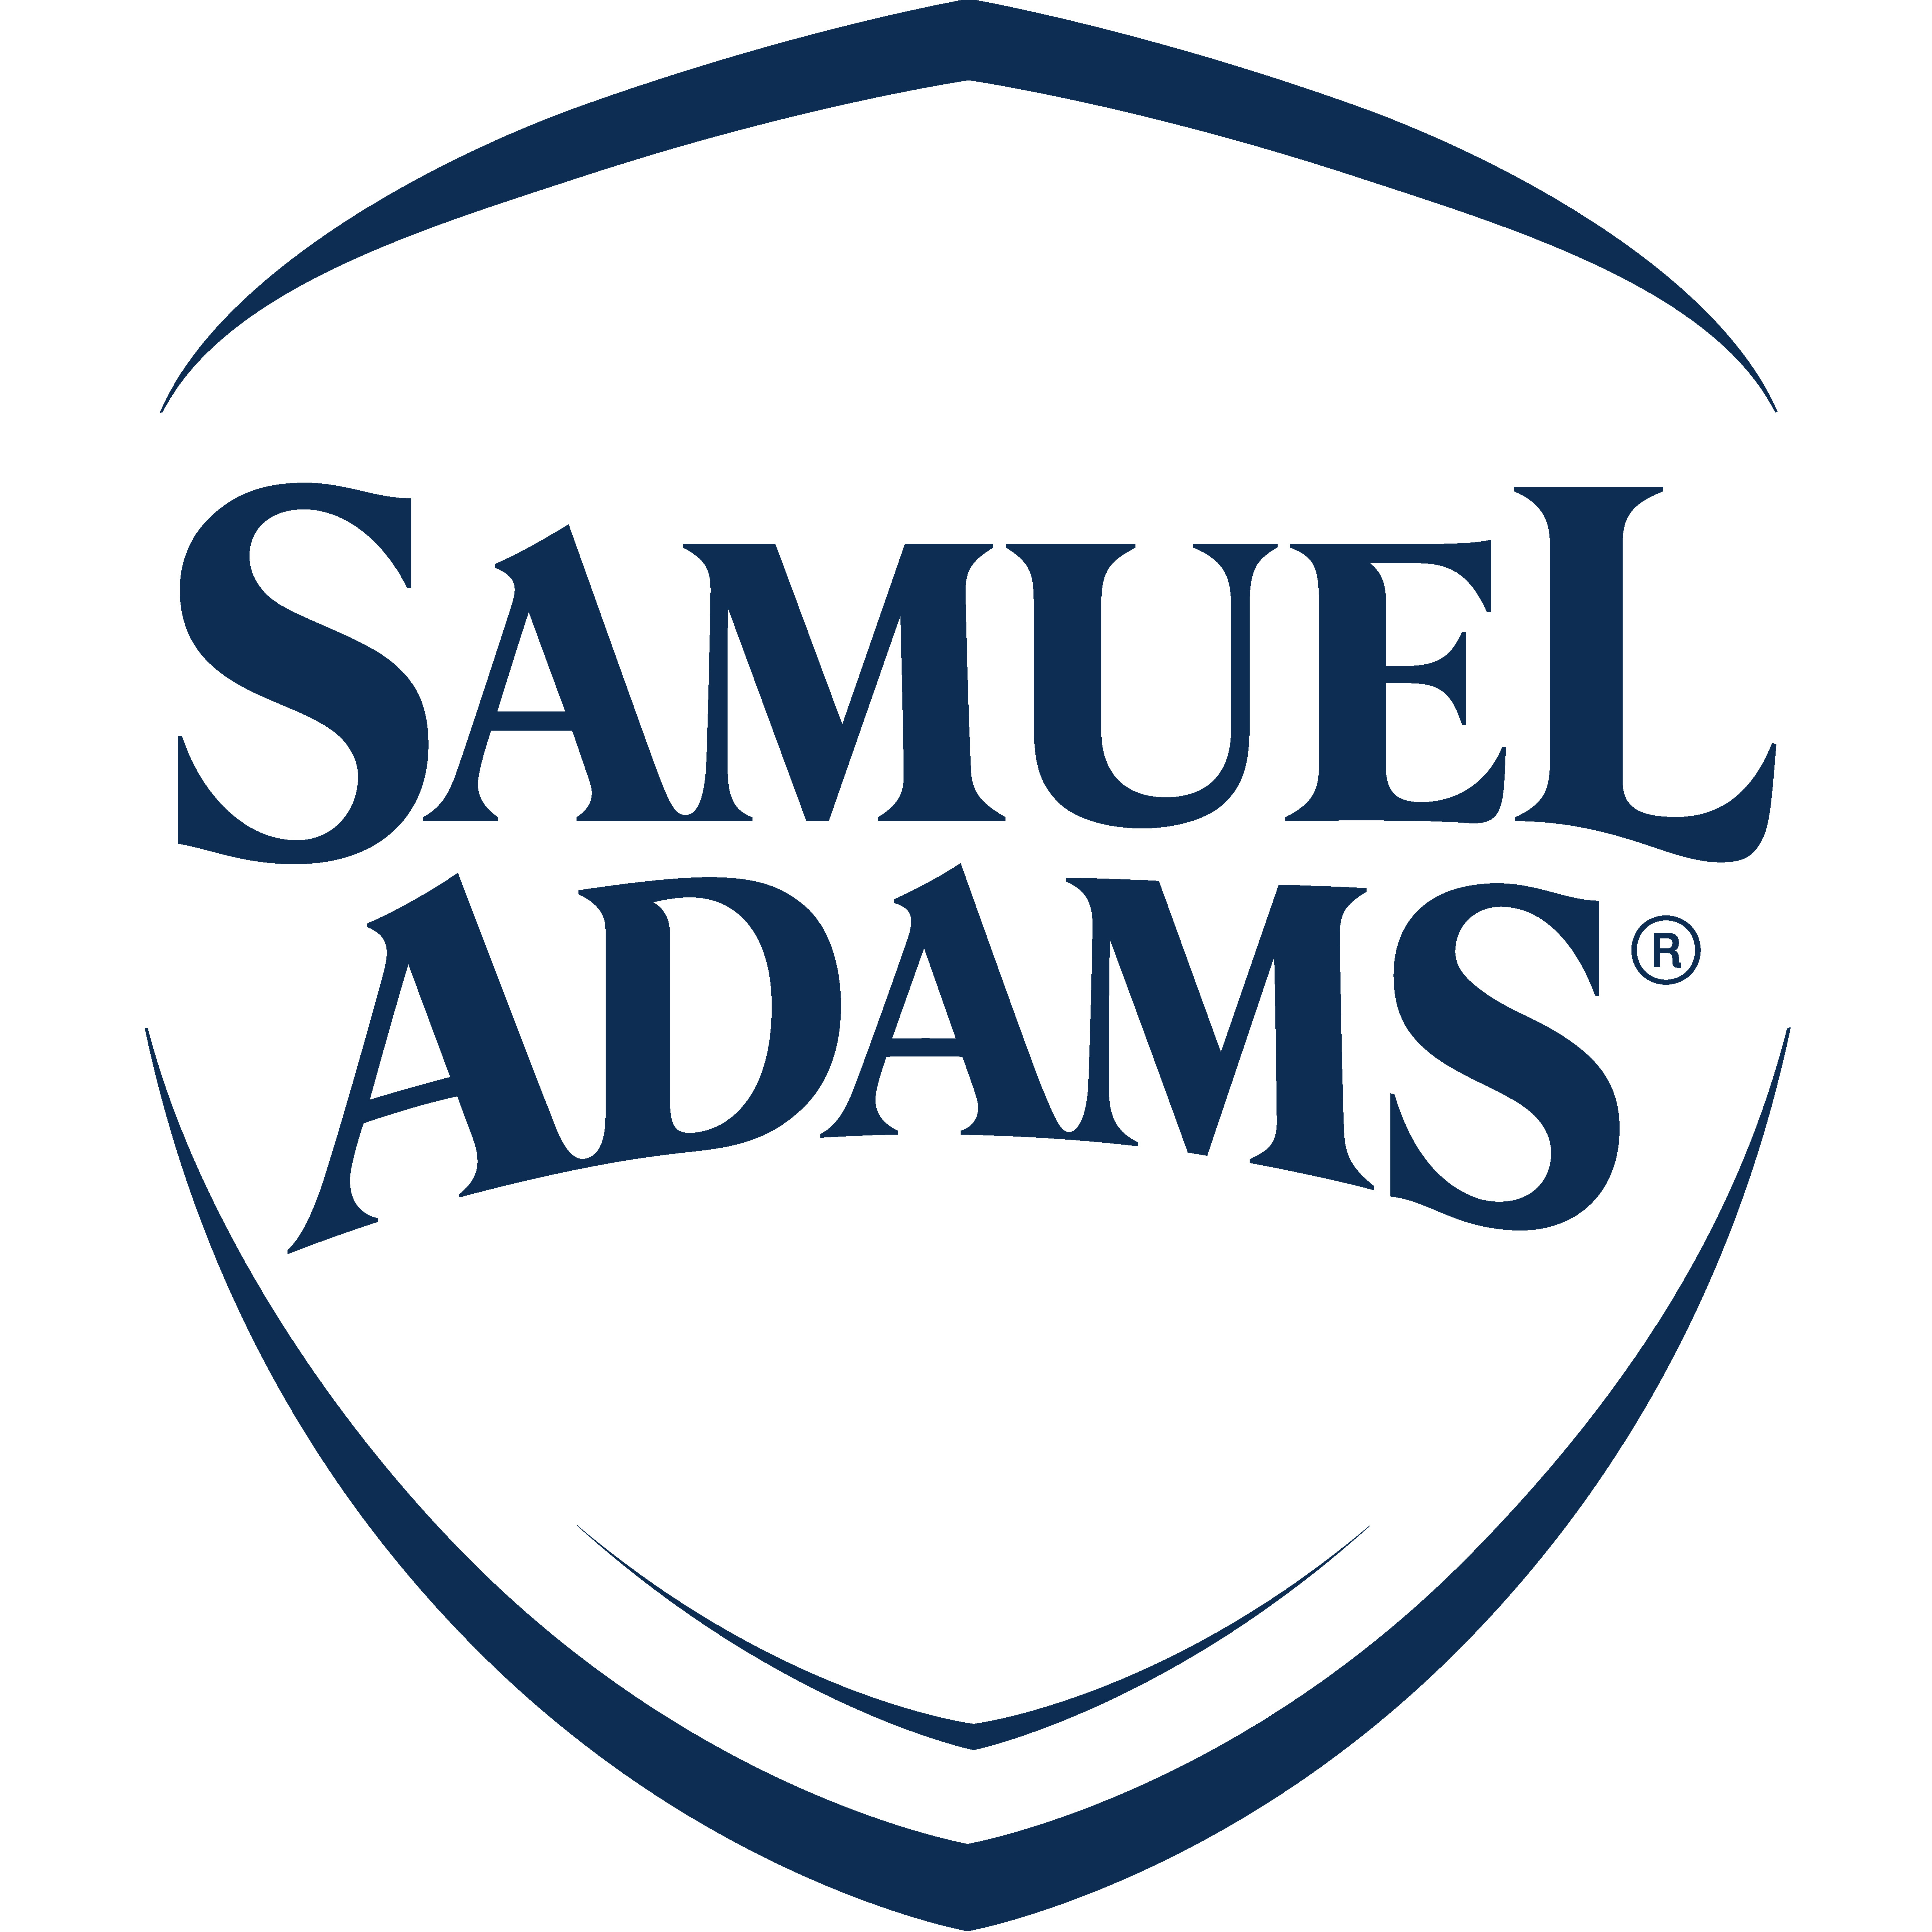 logo for Samuel Adams